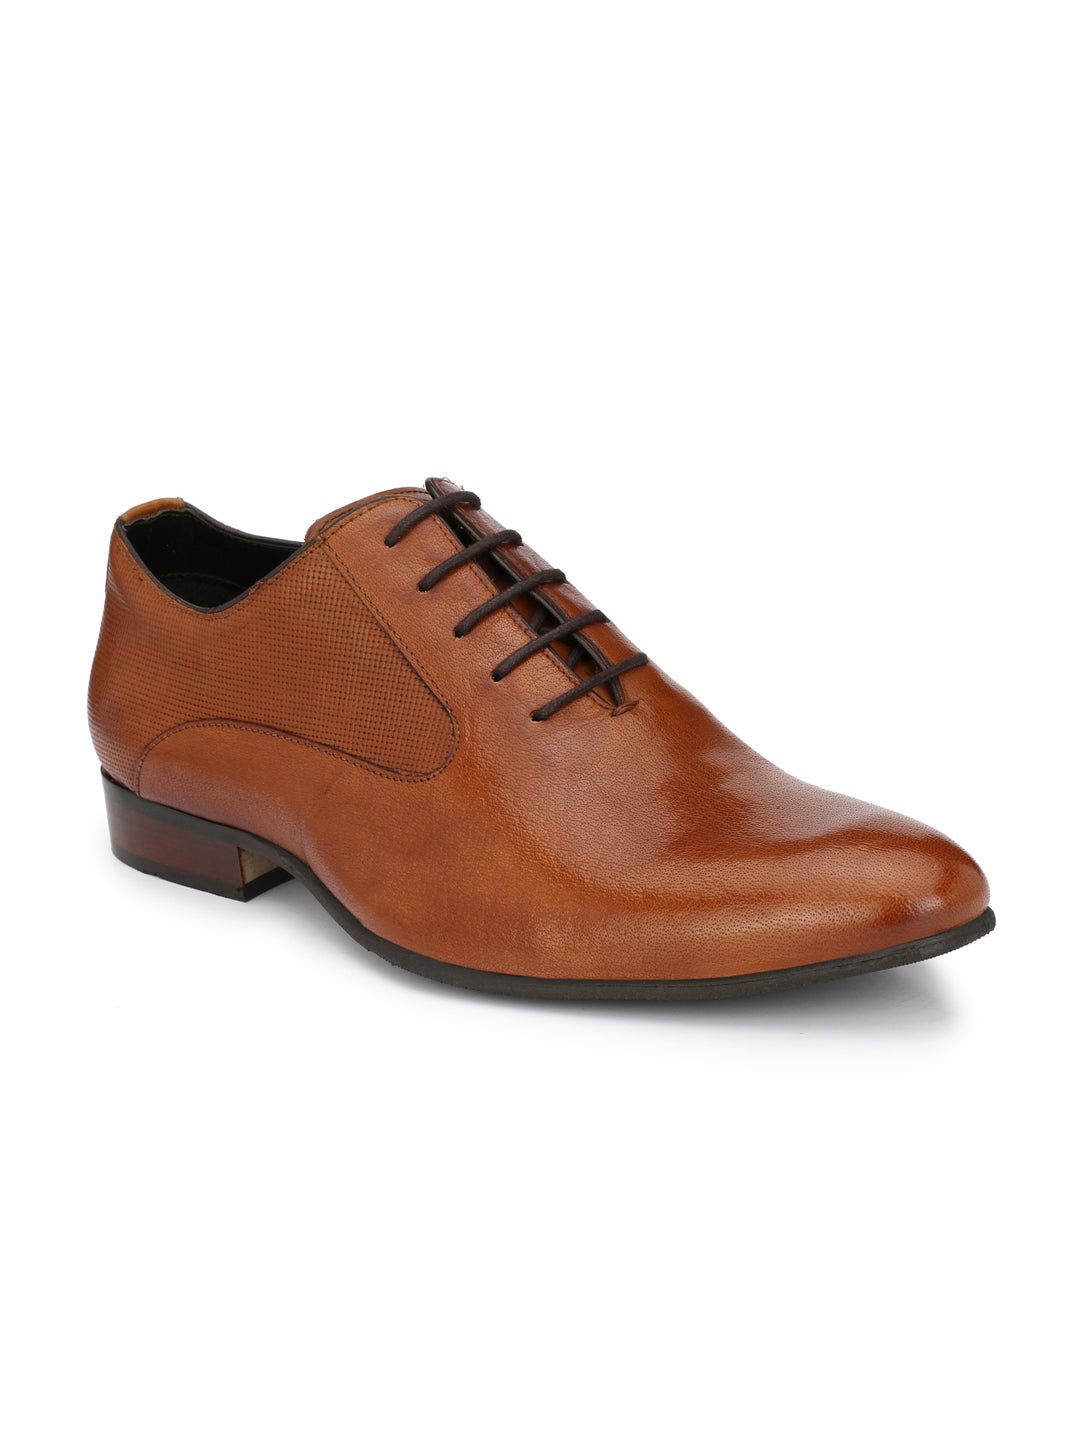 Alberto Torresi Stagio Tan Leather Formal Men Shoes